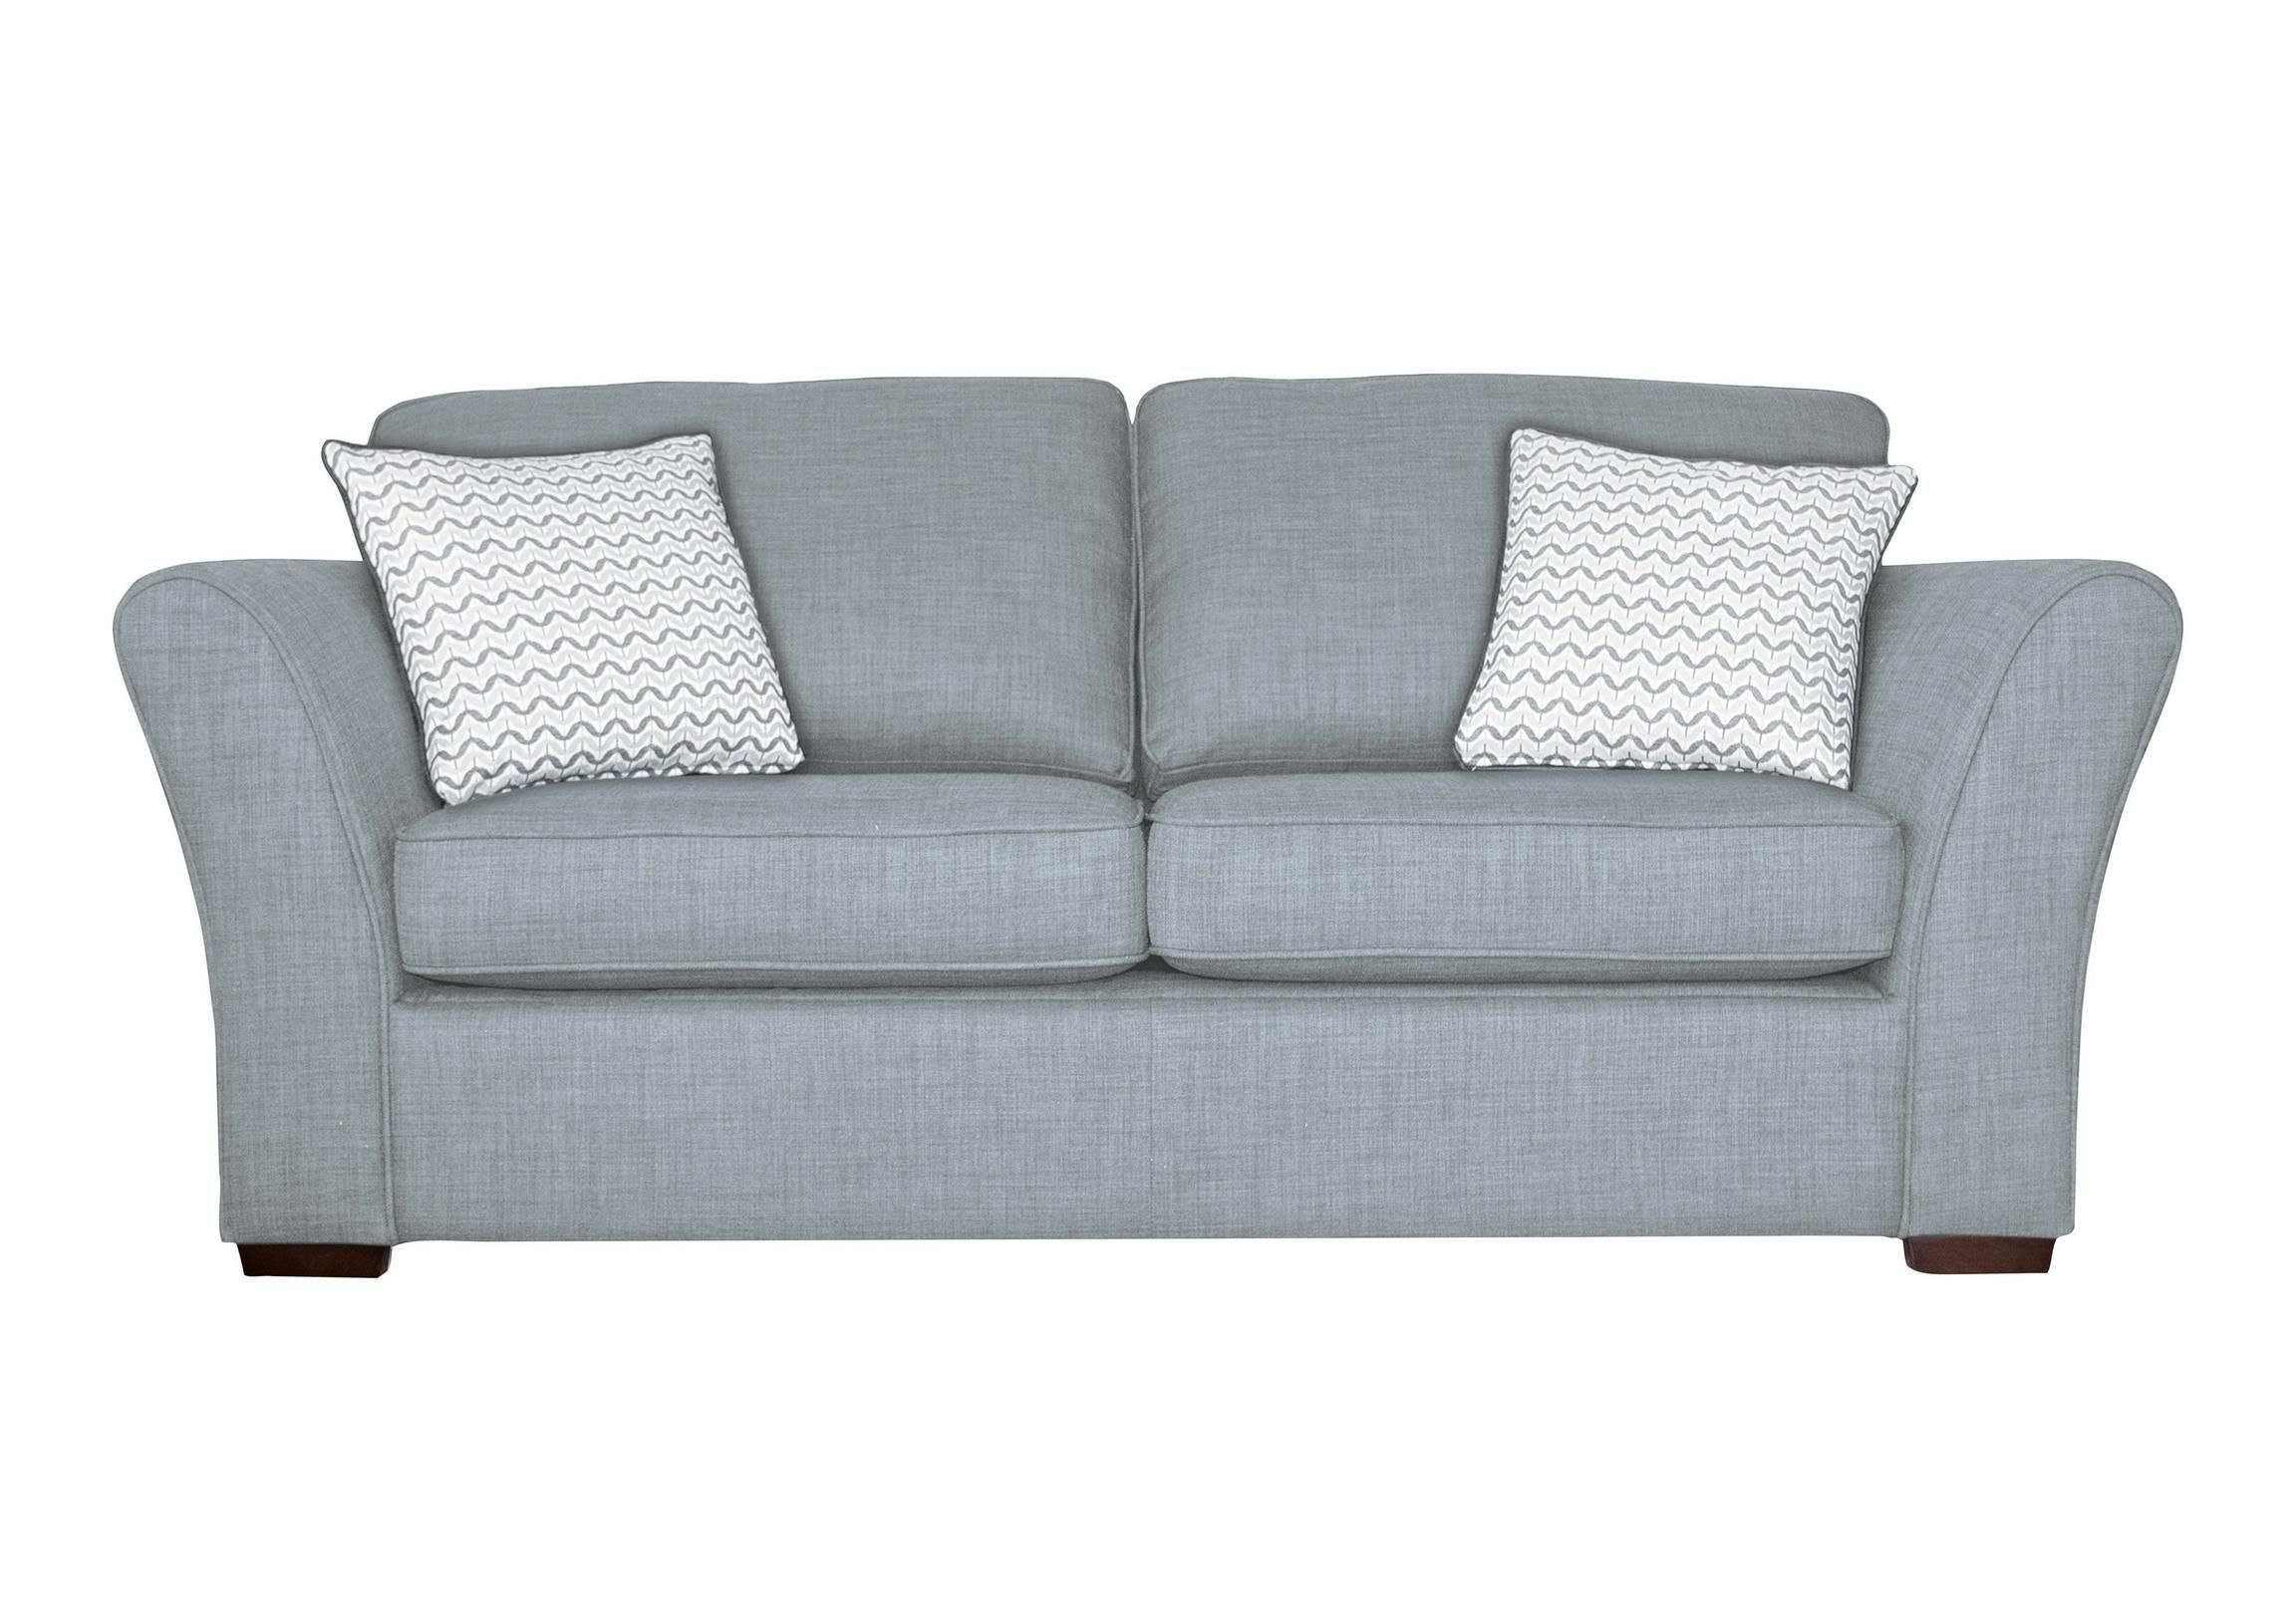 italian sofas simple living. Shop Now For The Twilight 2 Seater Fabric Sofa Bed. It Offers Simple Style And Italian Sofas Living